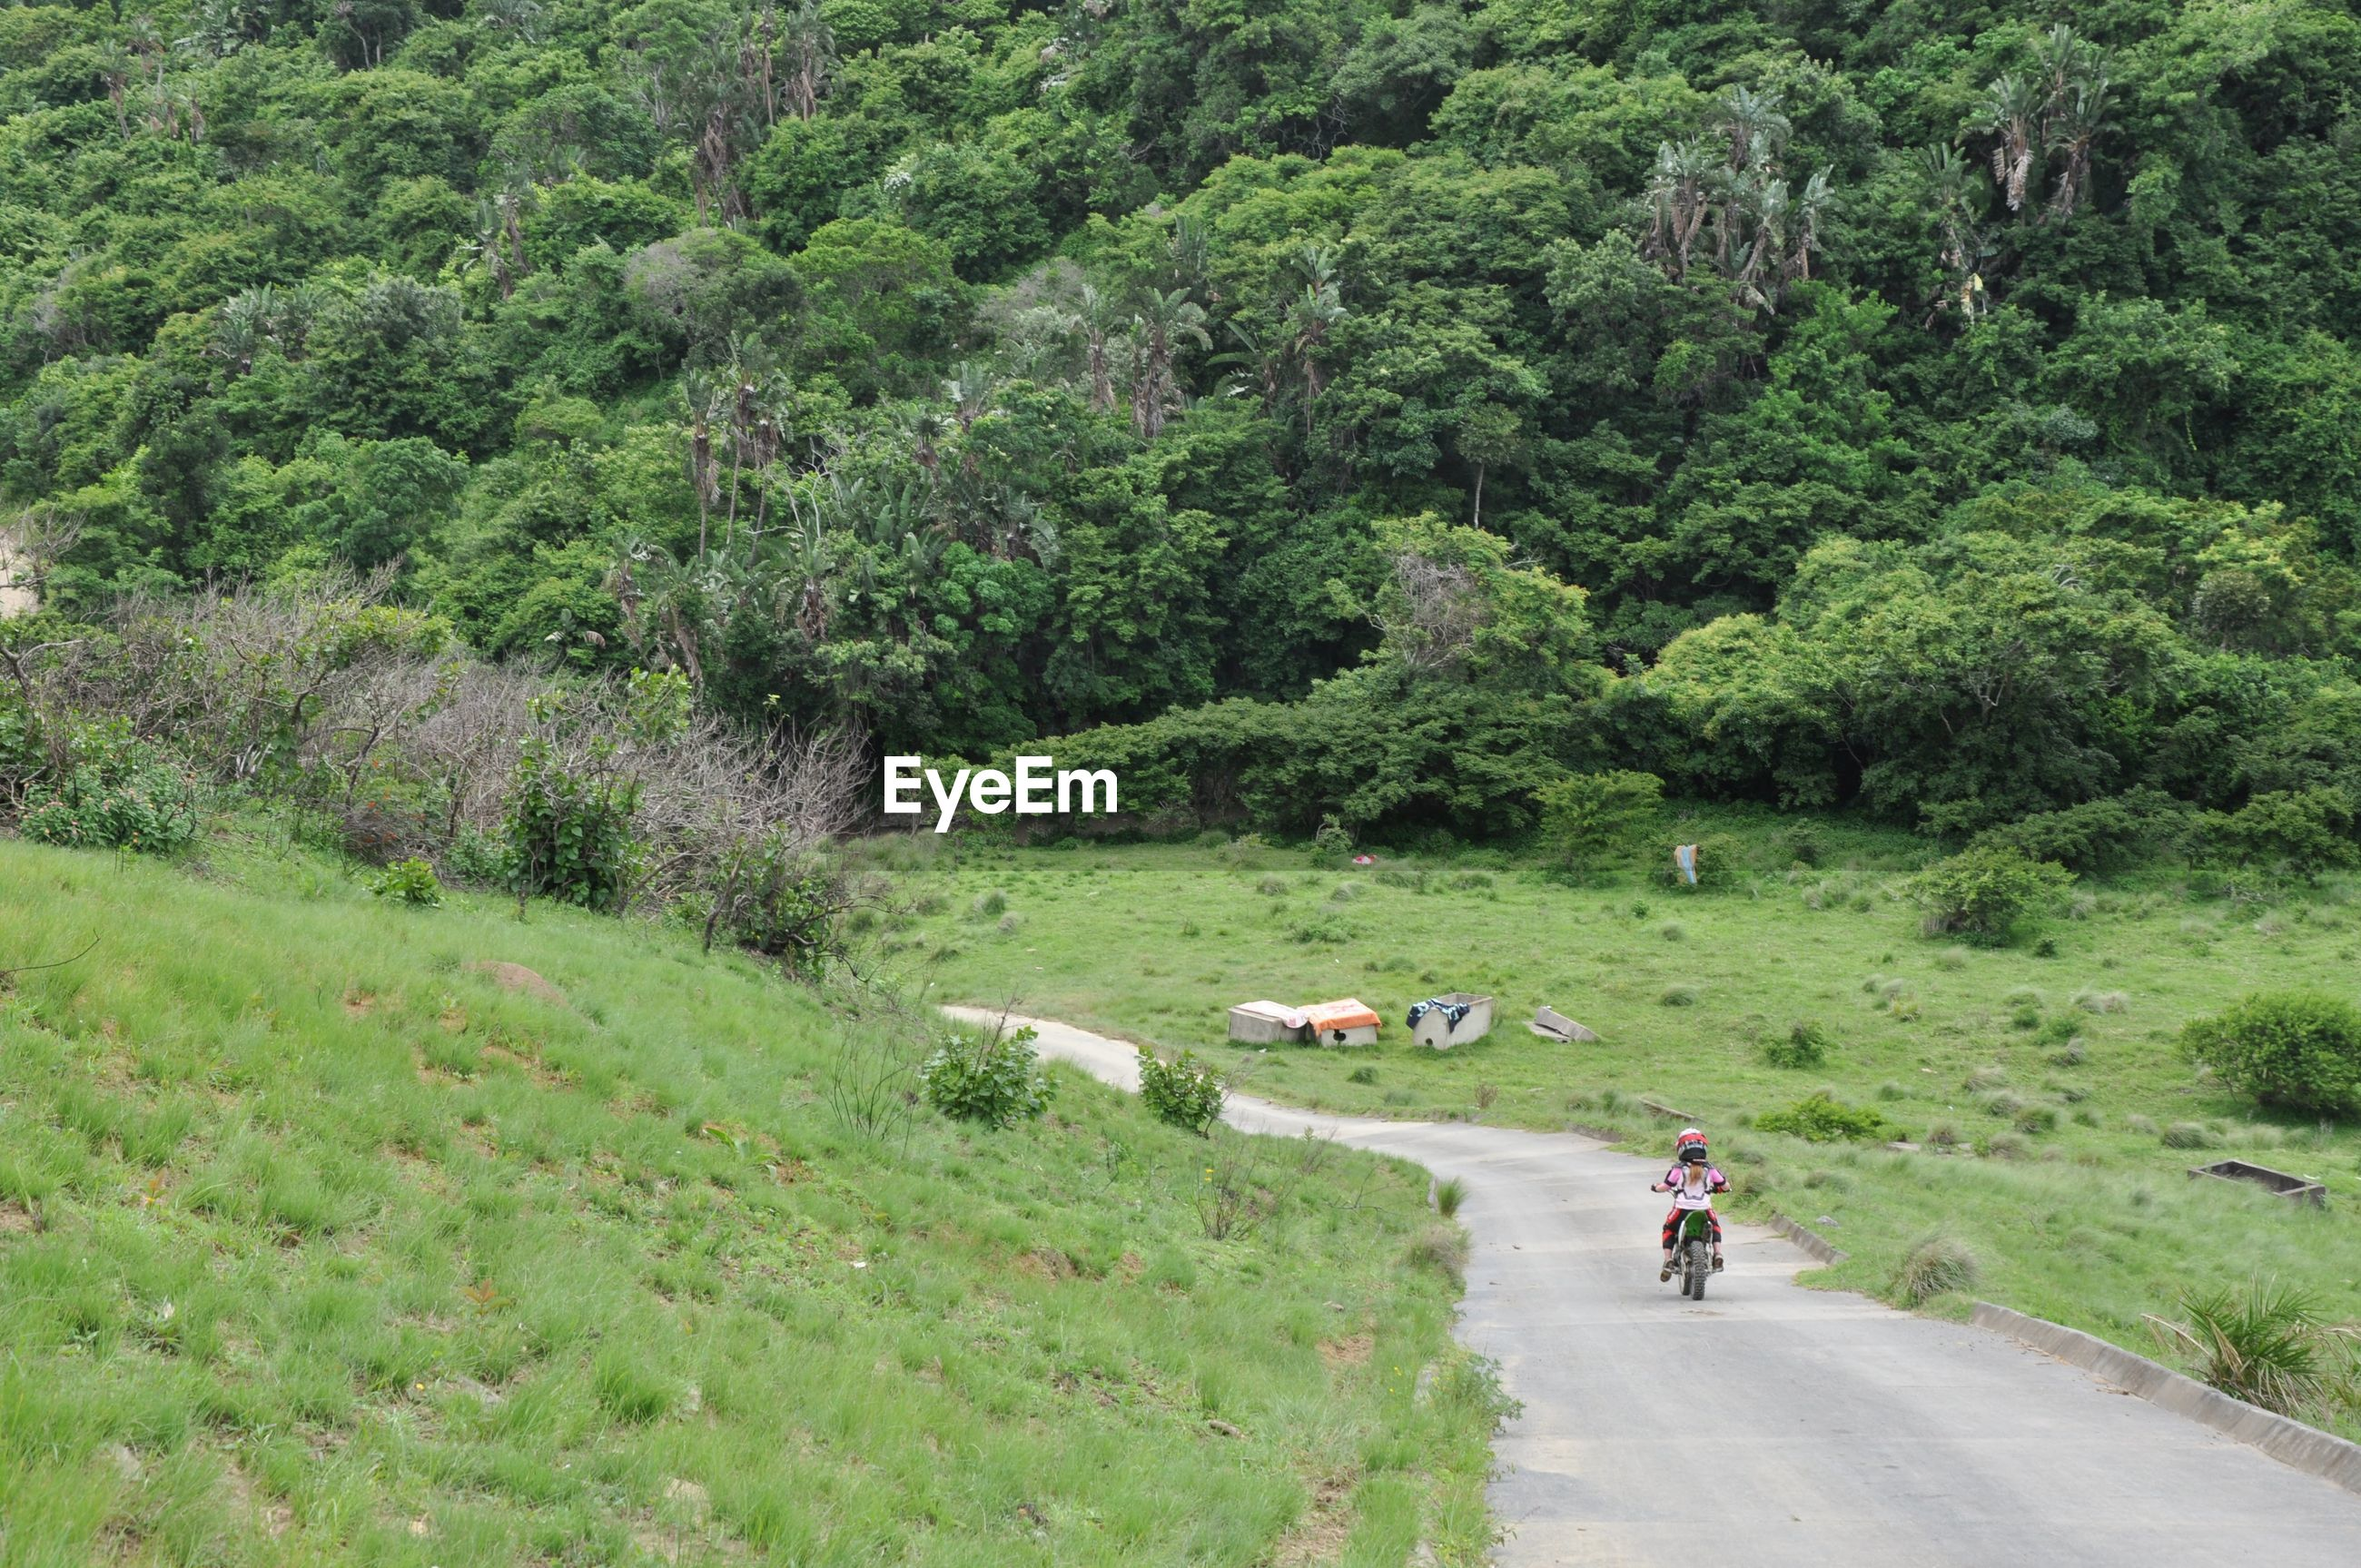 Rear view of person riding bicycle on road against forest